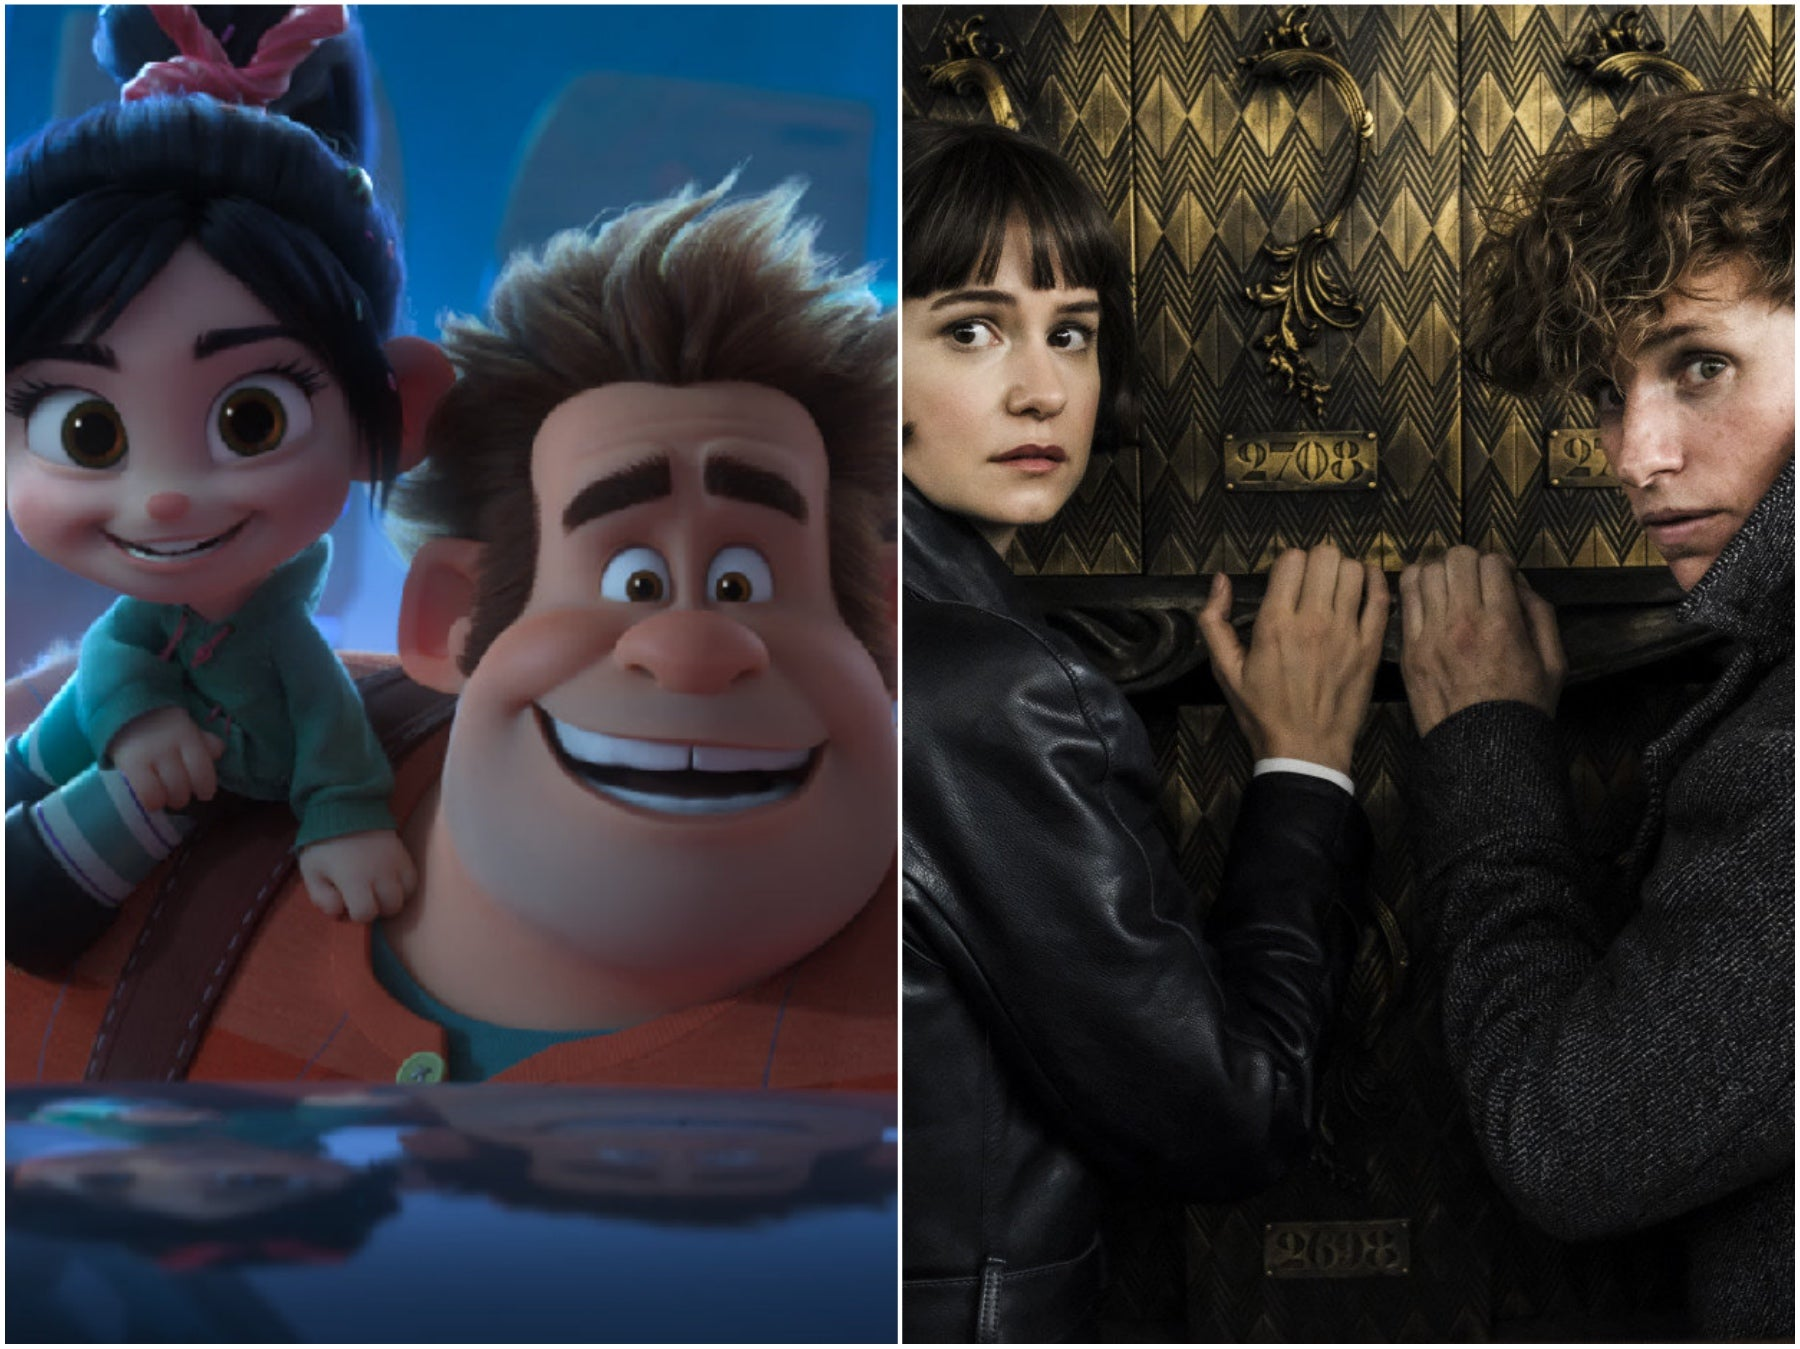 """Scenes from """"Fantastic Beasts 2"""" and """"Ralphn Breaks the Internet"""", 2018"""